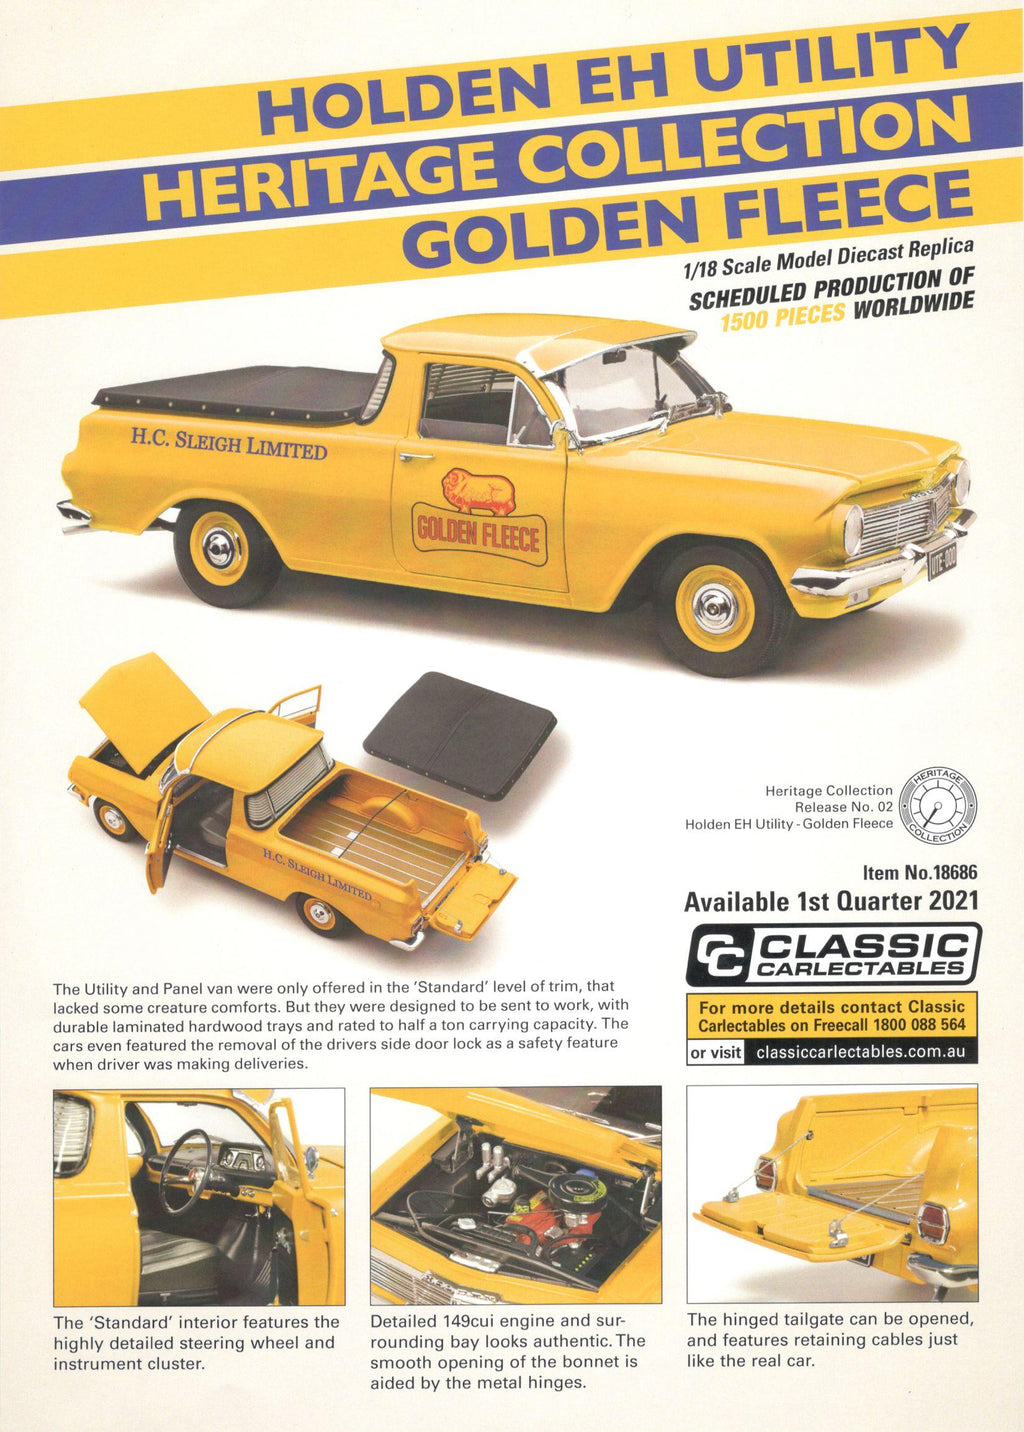 Classic Carlectables Holden EH Utility Heritage Collection Golden Fleece 18686